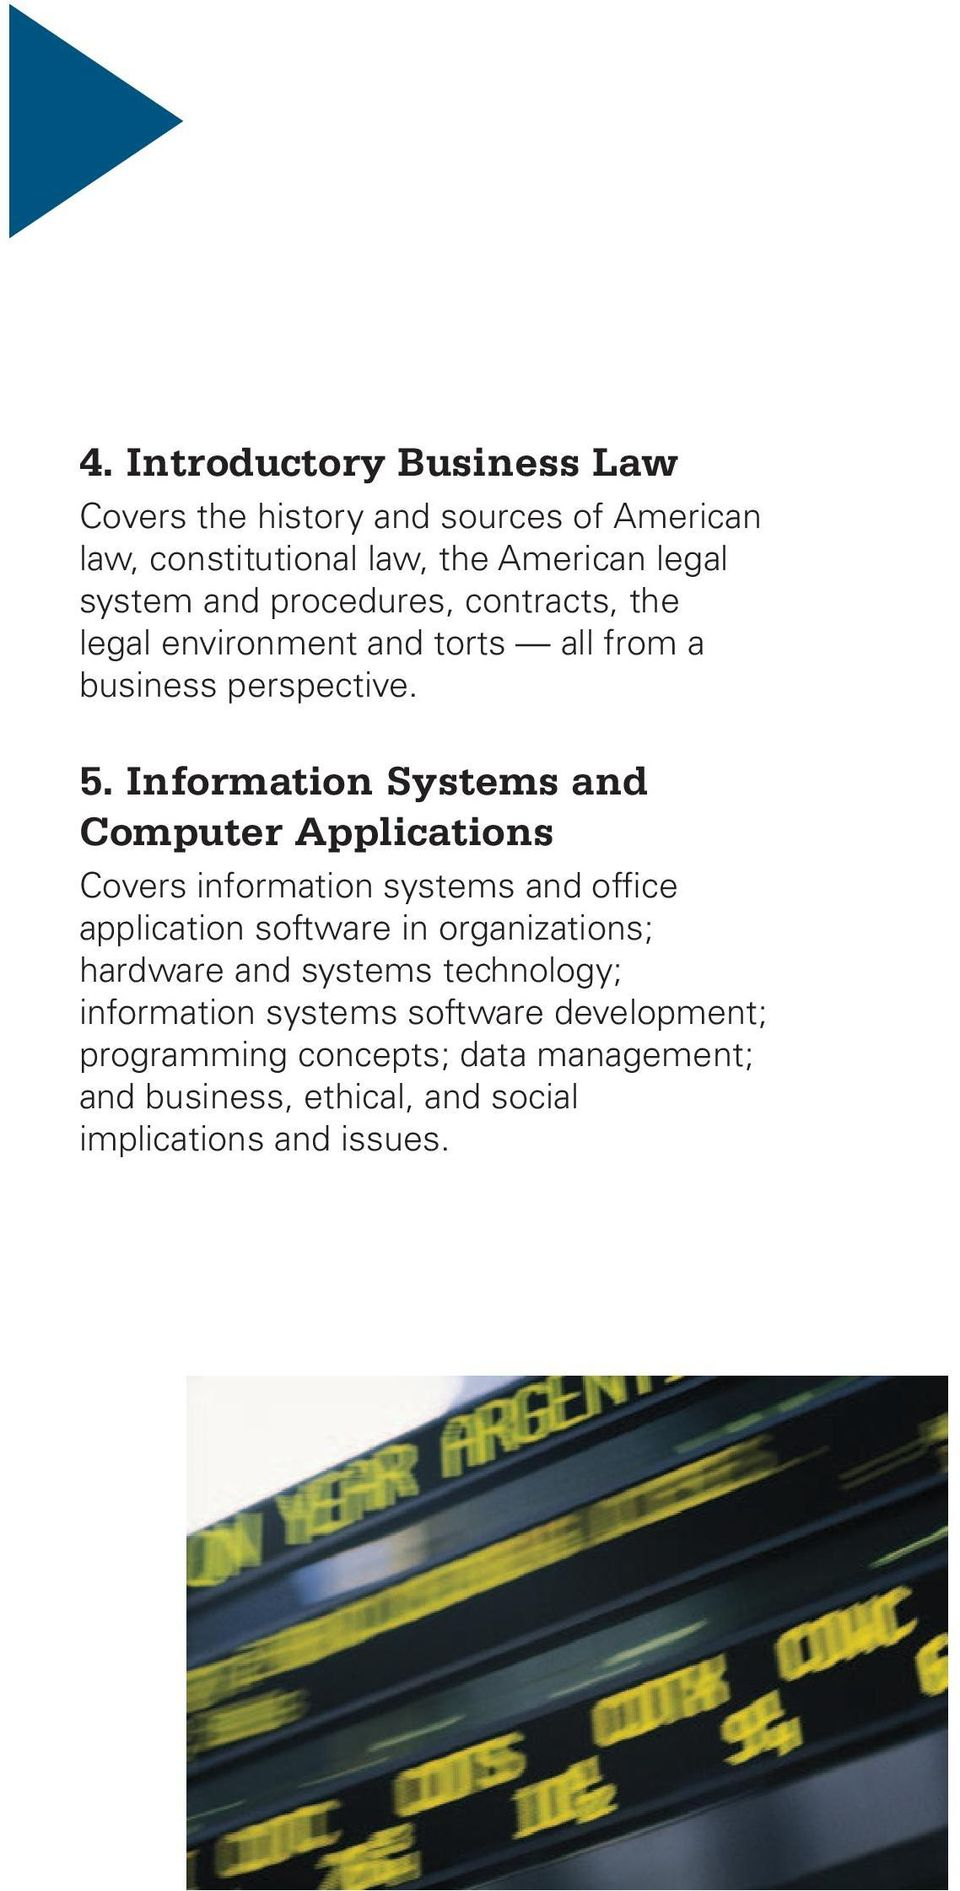 Information Systems and Computer Applications Covers information systems and office application software in organizations;